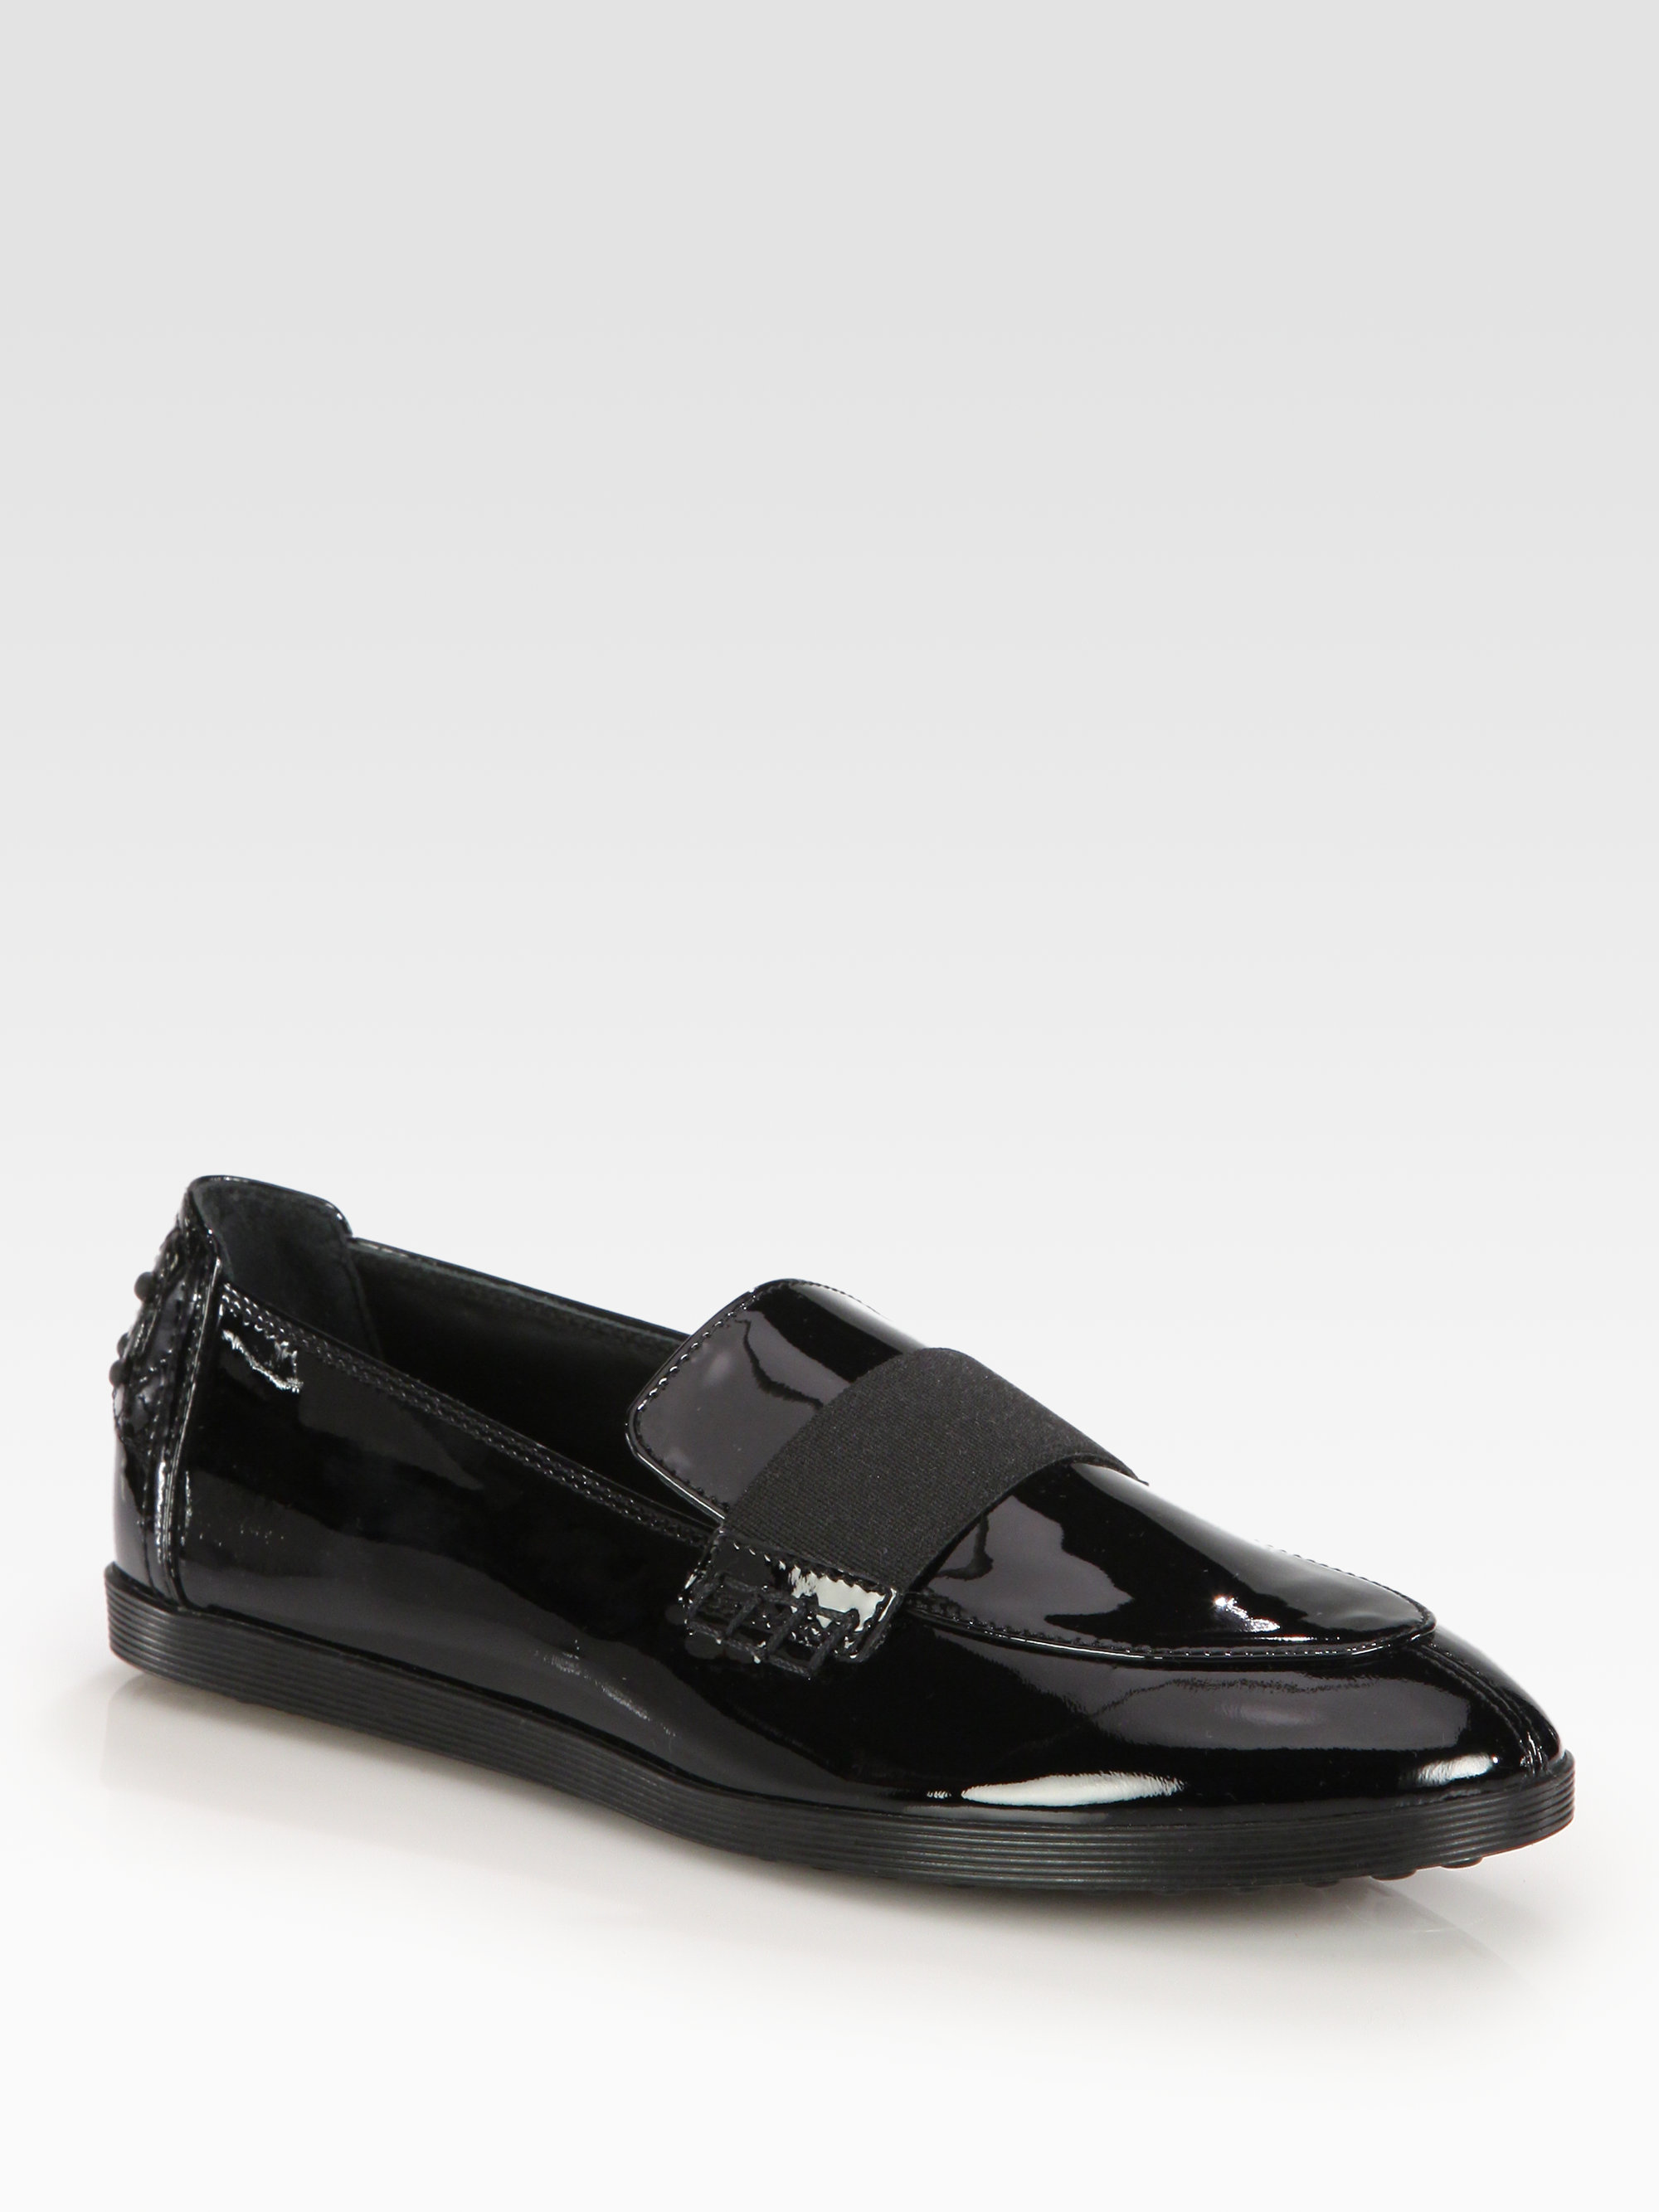 Tod's Patent Loafer outlet perfect discount great deals sale store HoJcZ1